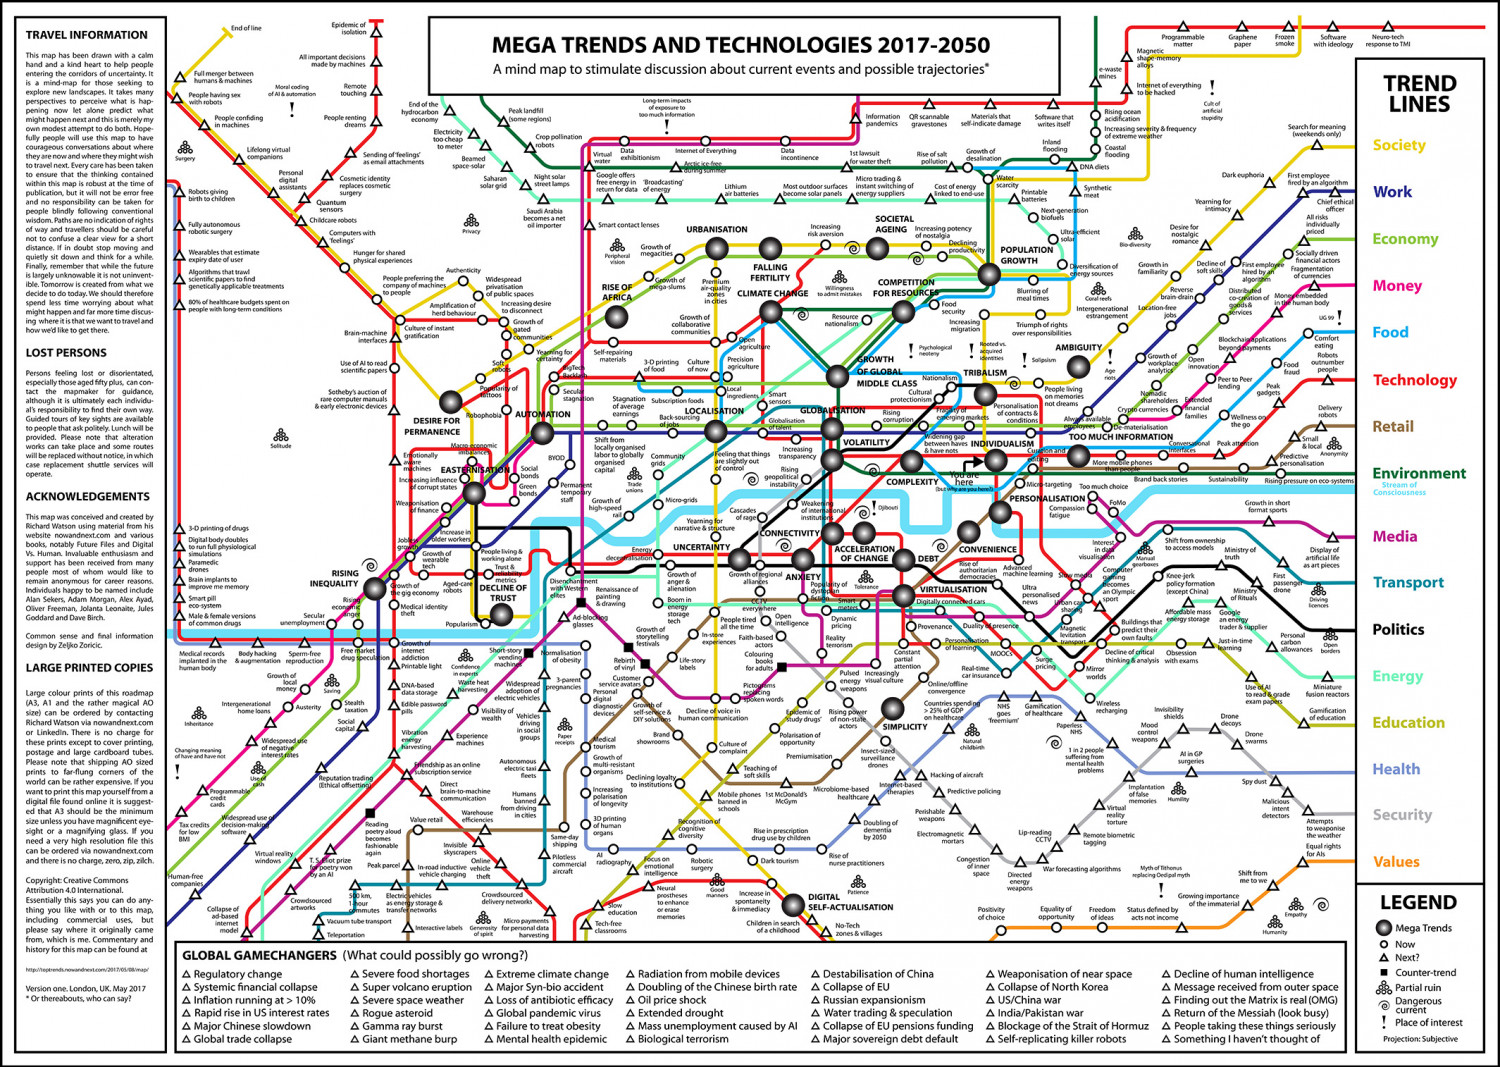 Mega Trends and Technologies 2017-2050 Infographic